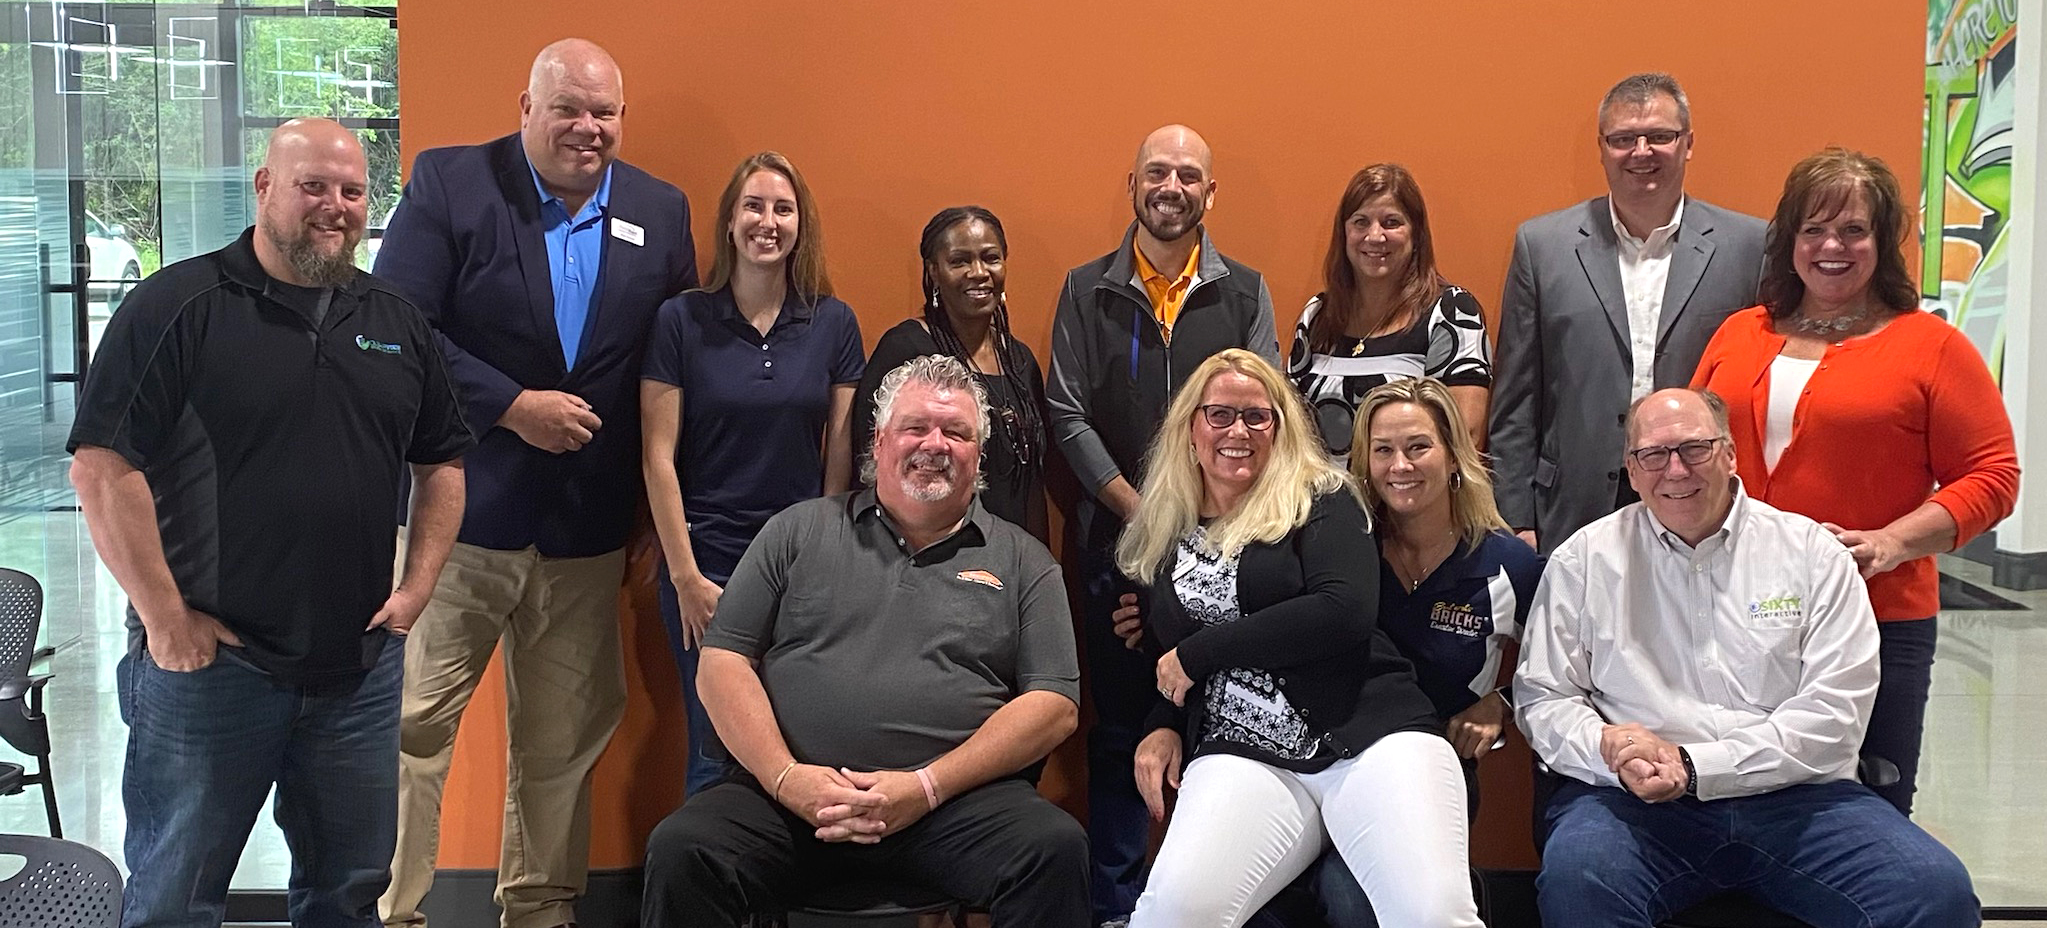 The 2018 Sales Lead Roundtable committee